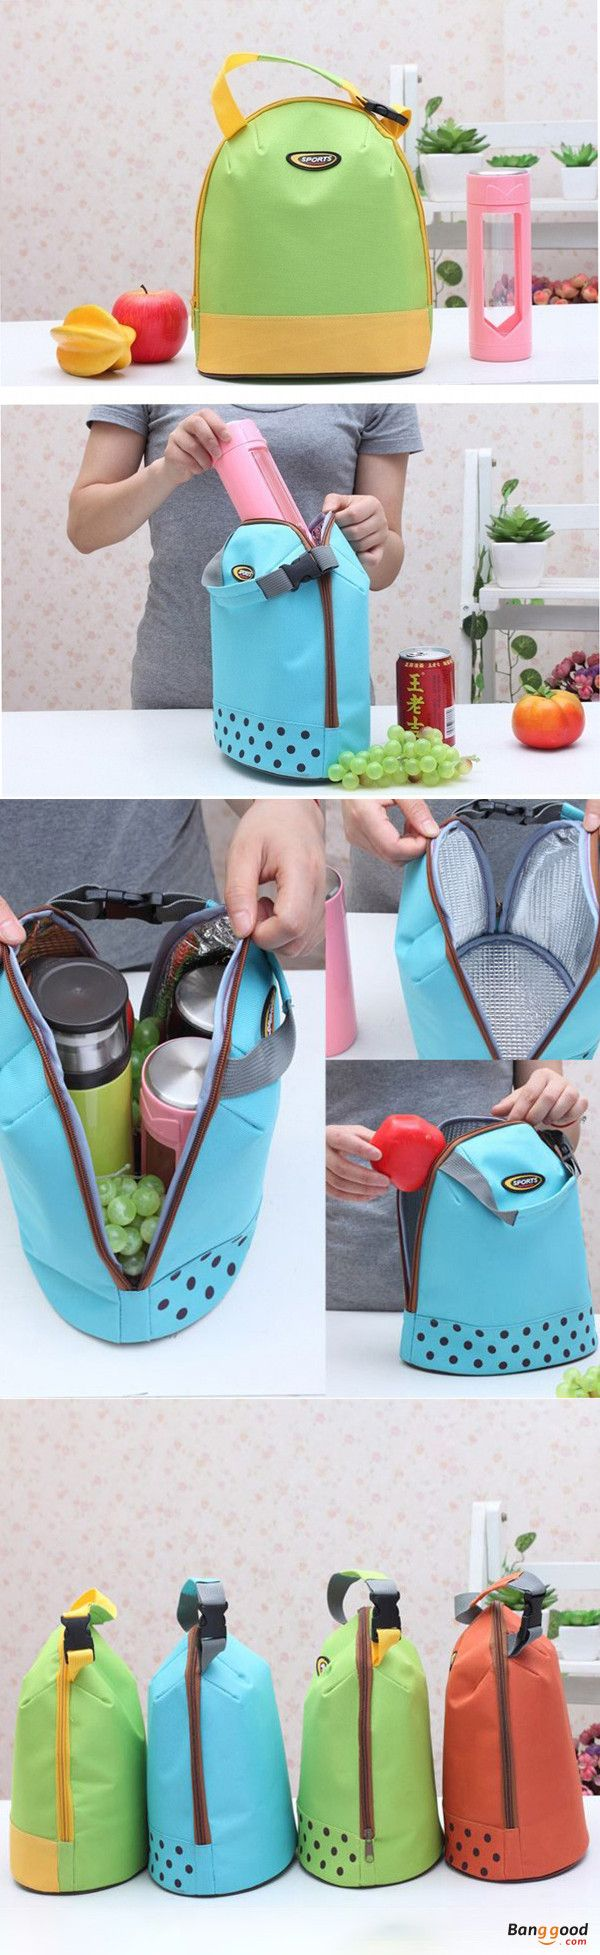 US$6.95 + Free shipping. Kitchen Ideas, Kitchen Decor, Travel Quotes, Camping Ideas, Travel Bags, Camping Picnic Bags. Color : Blue, Green, Yellow Green, Orange Red. Storage food and drink for cool or hot.